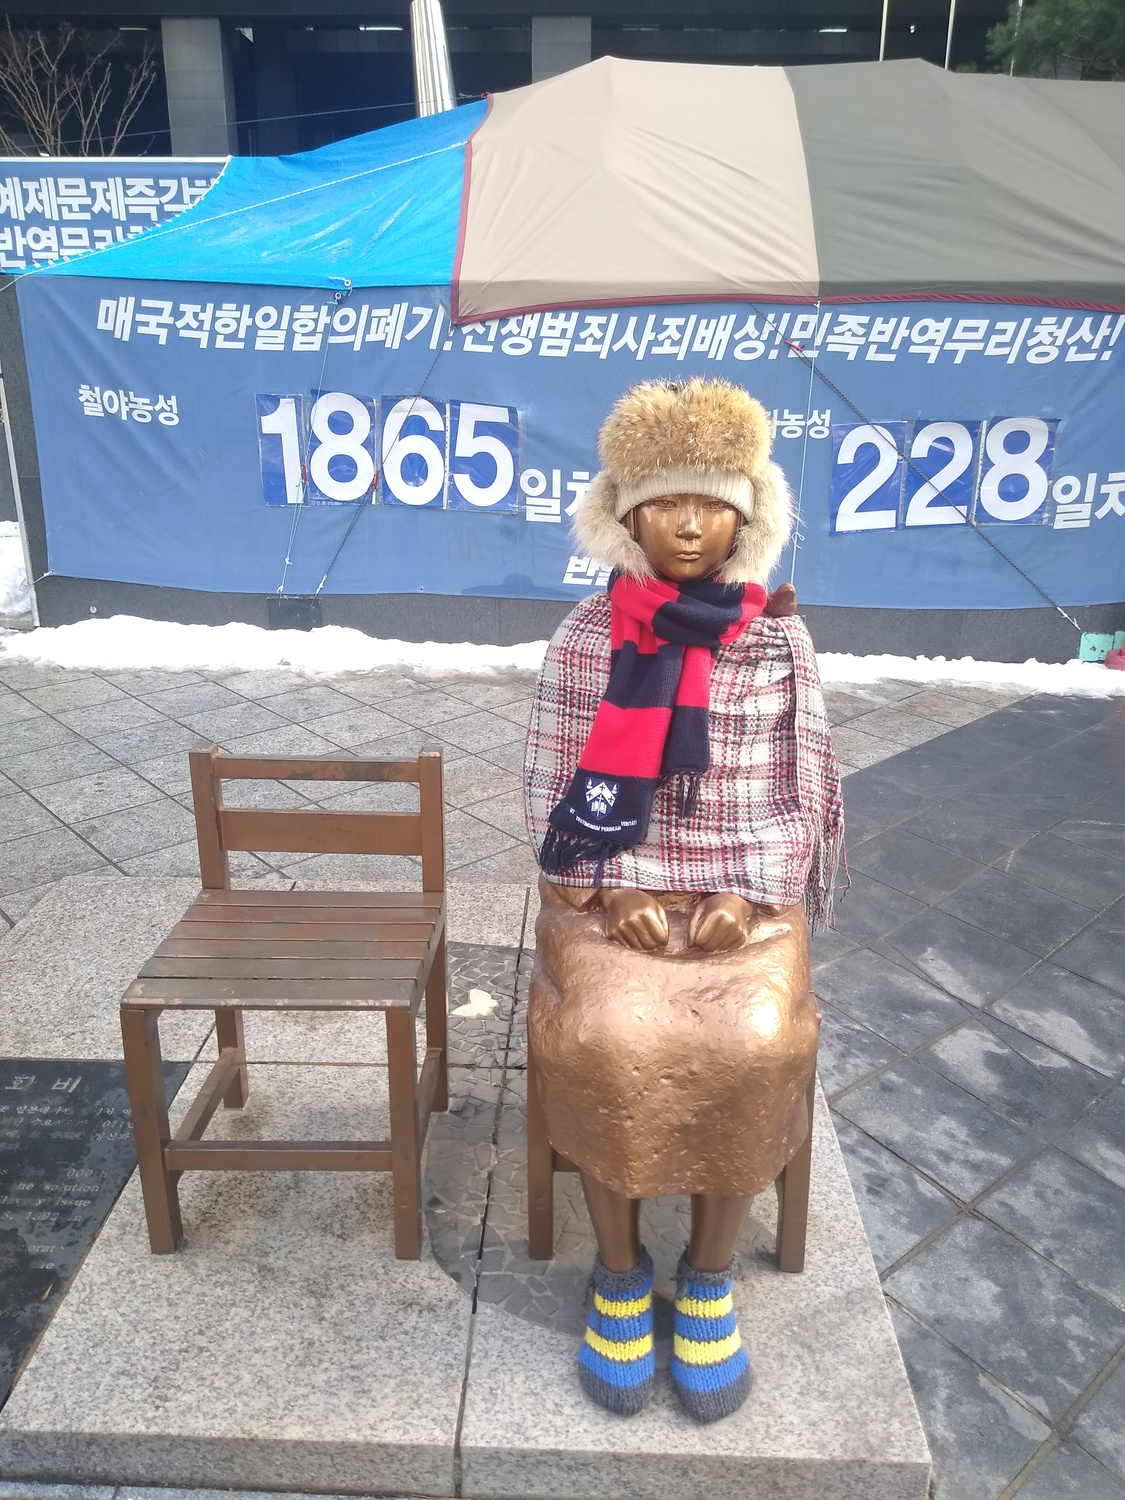 The Statue of Peace in front of the former Japanese Embassy in Seoul, South Korea commemorates comfort women, sex slaves taken by the Imperial Japanese Army during World War II. The slogans on the tarp behind the statue demand the Japanese government to make reparations.